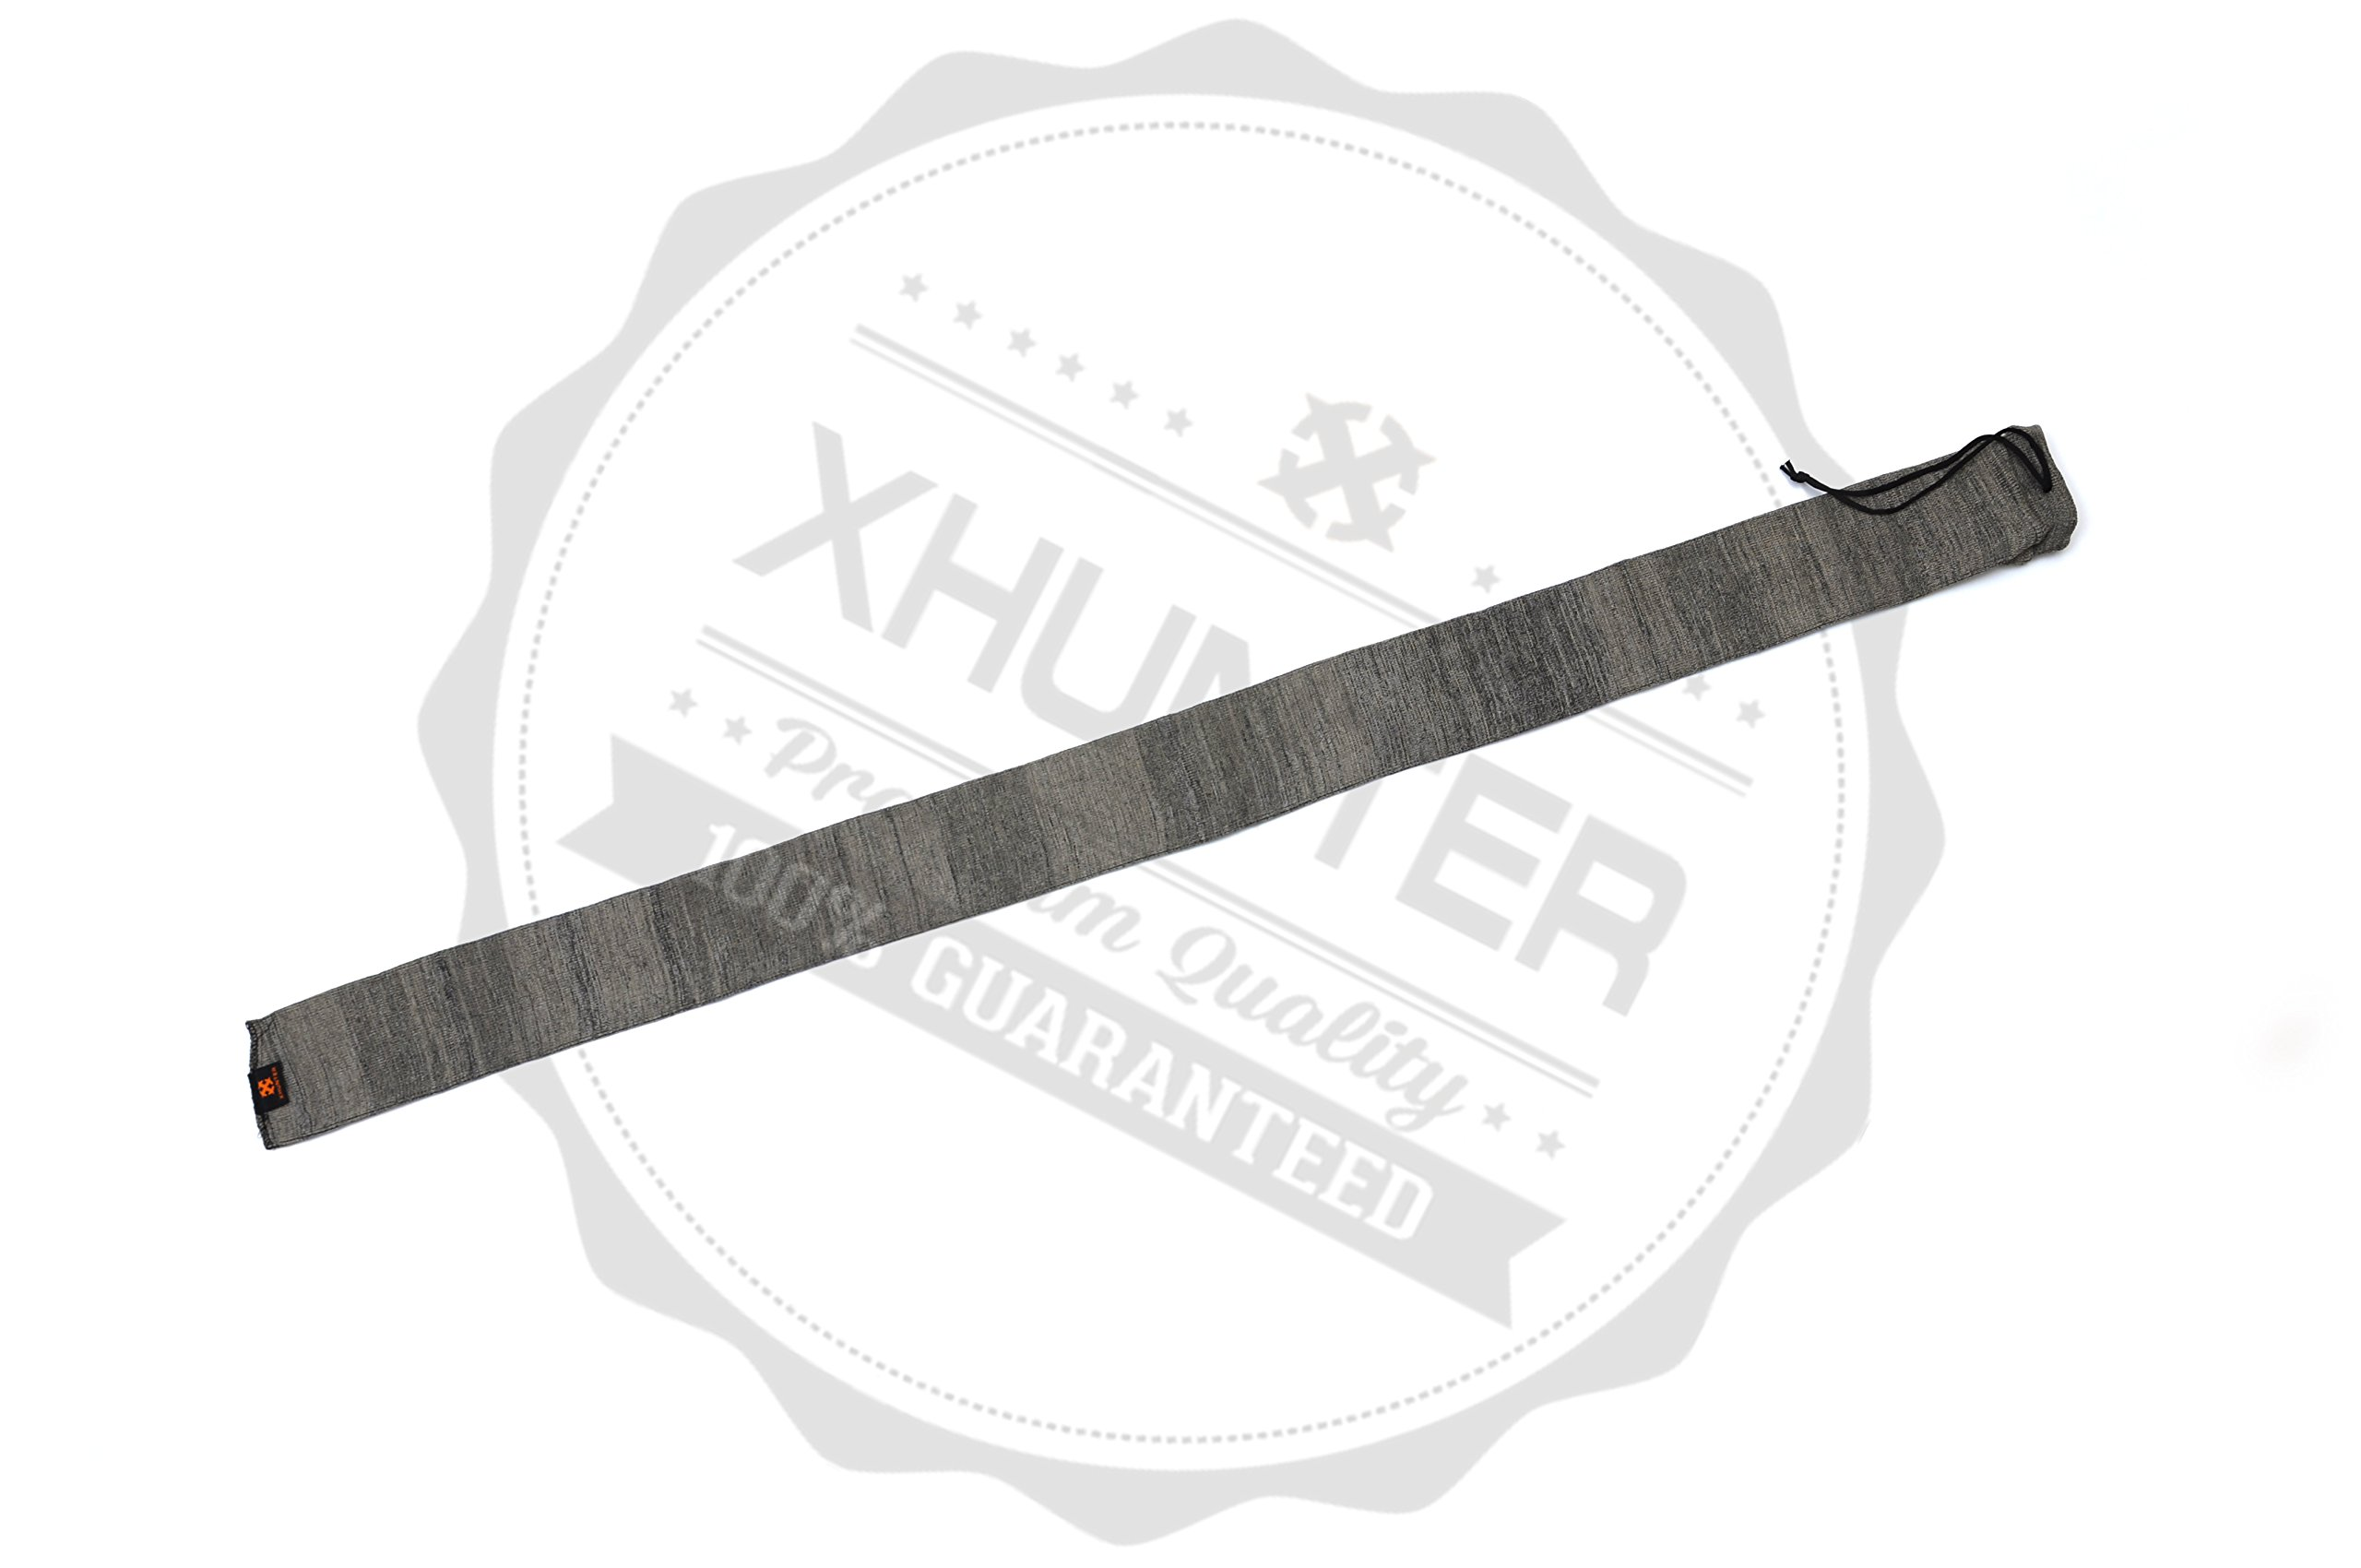 Hunter XHUNTER 4 x GUN SOCK COVER SILICONE TREATED 52'' HUNTING RIFLE SHOTGUN PROTECTION by Hunter